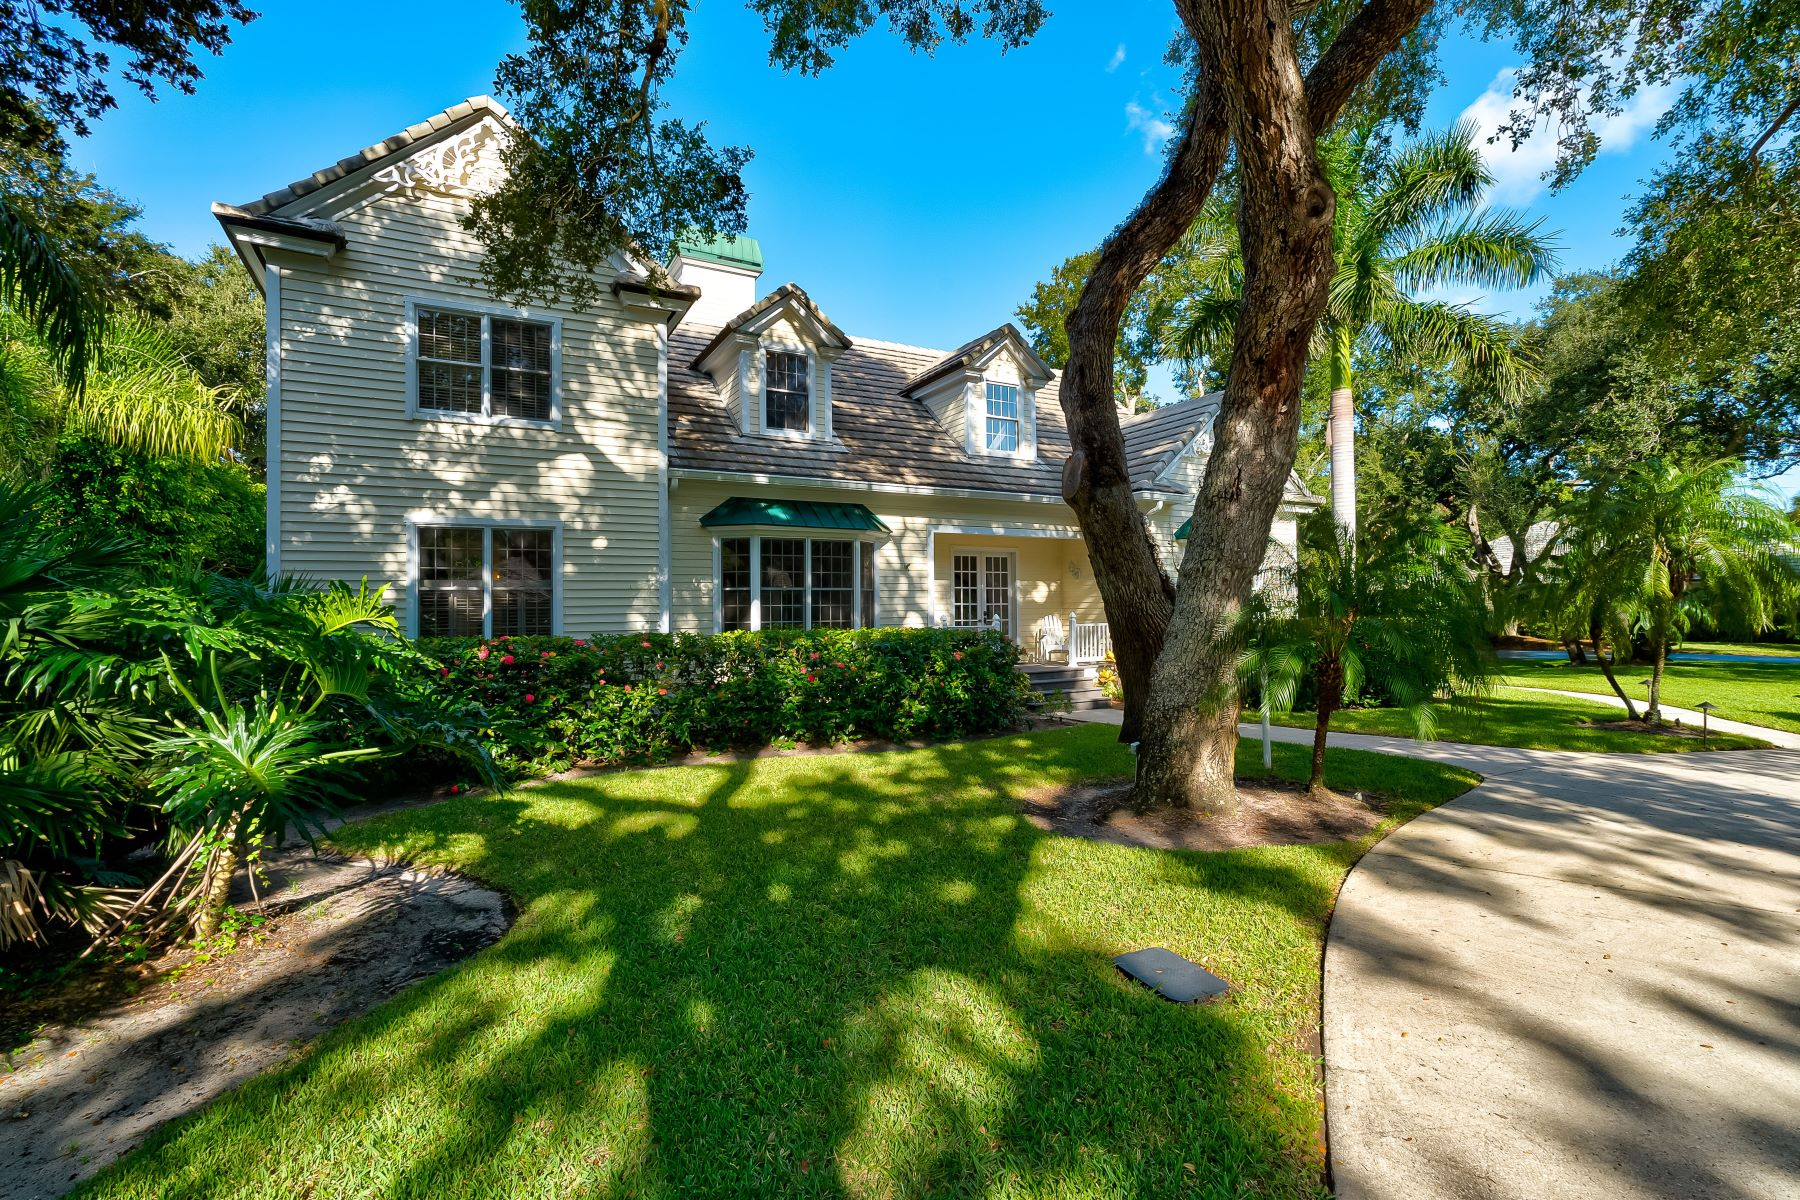 Single Family Homes for Active at 500 Sundance Trail, Indian River Shores, FL 500 Sundance Trail Indian River Shores, Florida 32963 United States